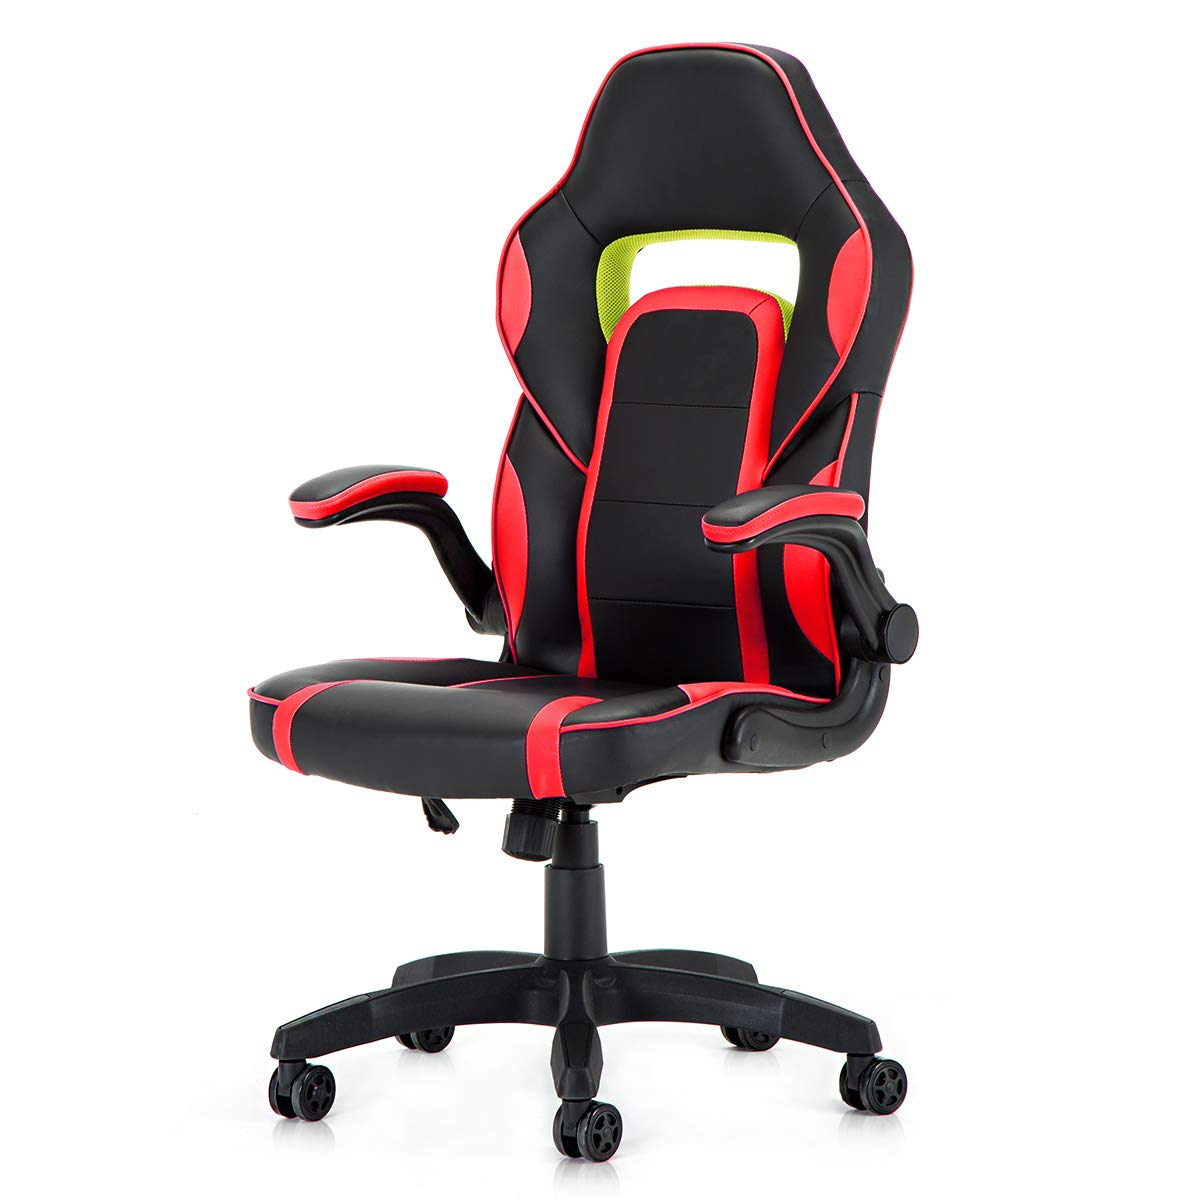 Red Racing Style PU Leather Gaming Chair - Ergonomic Swivel Computer, Office or Gaming Chair Desk Chair HOT (WH0)